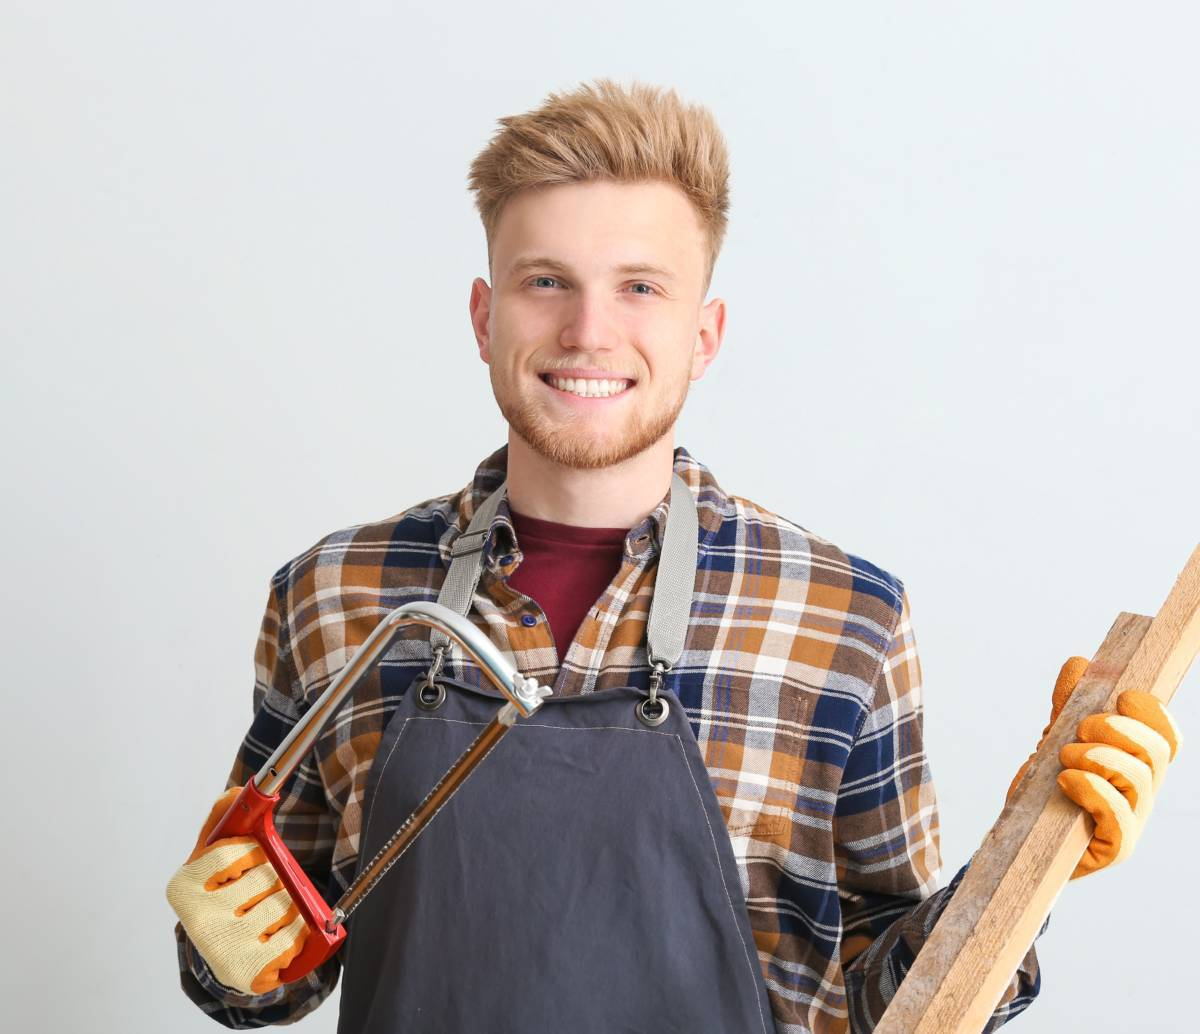 Male carpenter on grey background